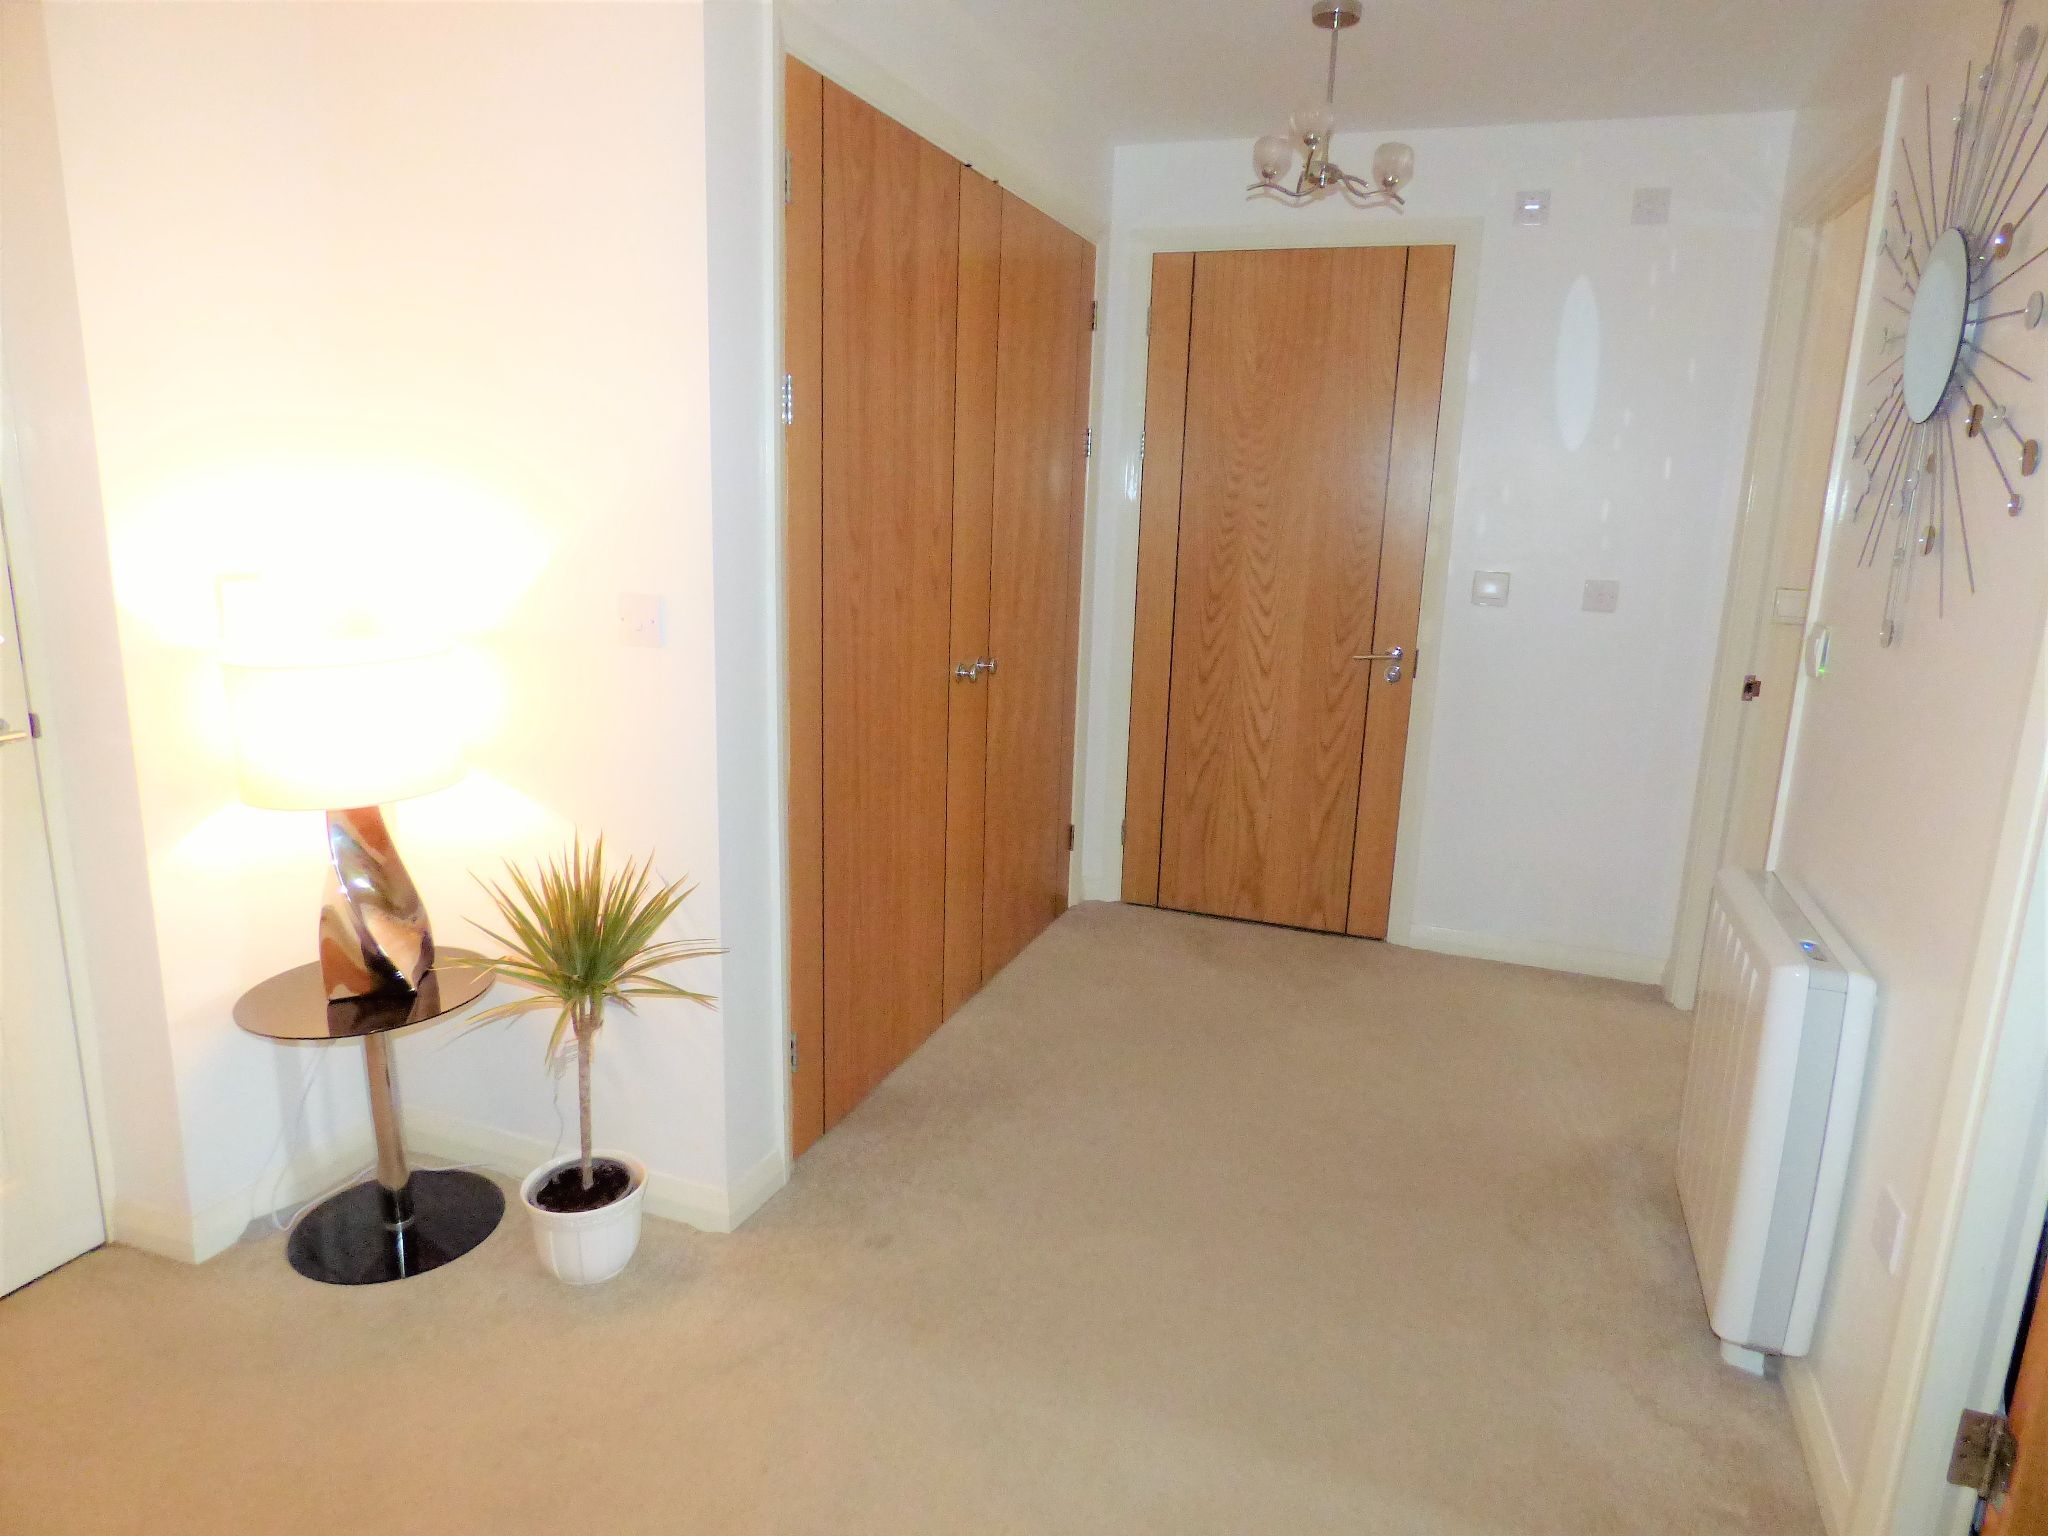 2 Bedroom Ground Floor Flat/apartment For Sale - Photograph 13